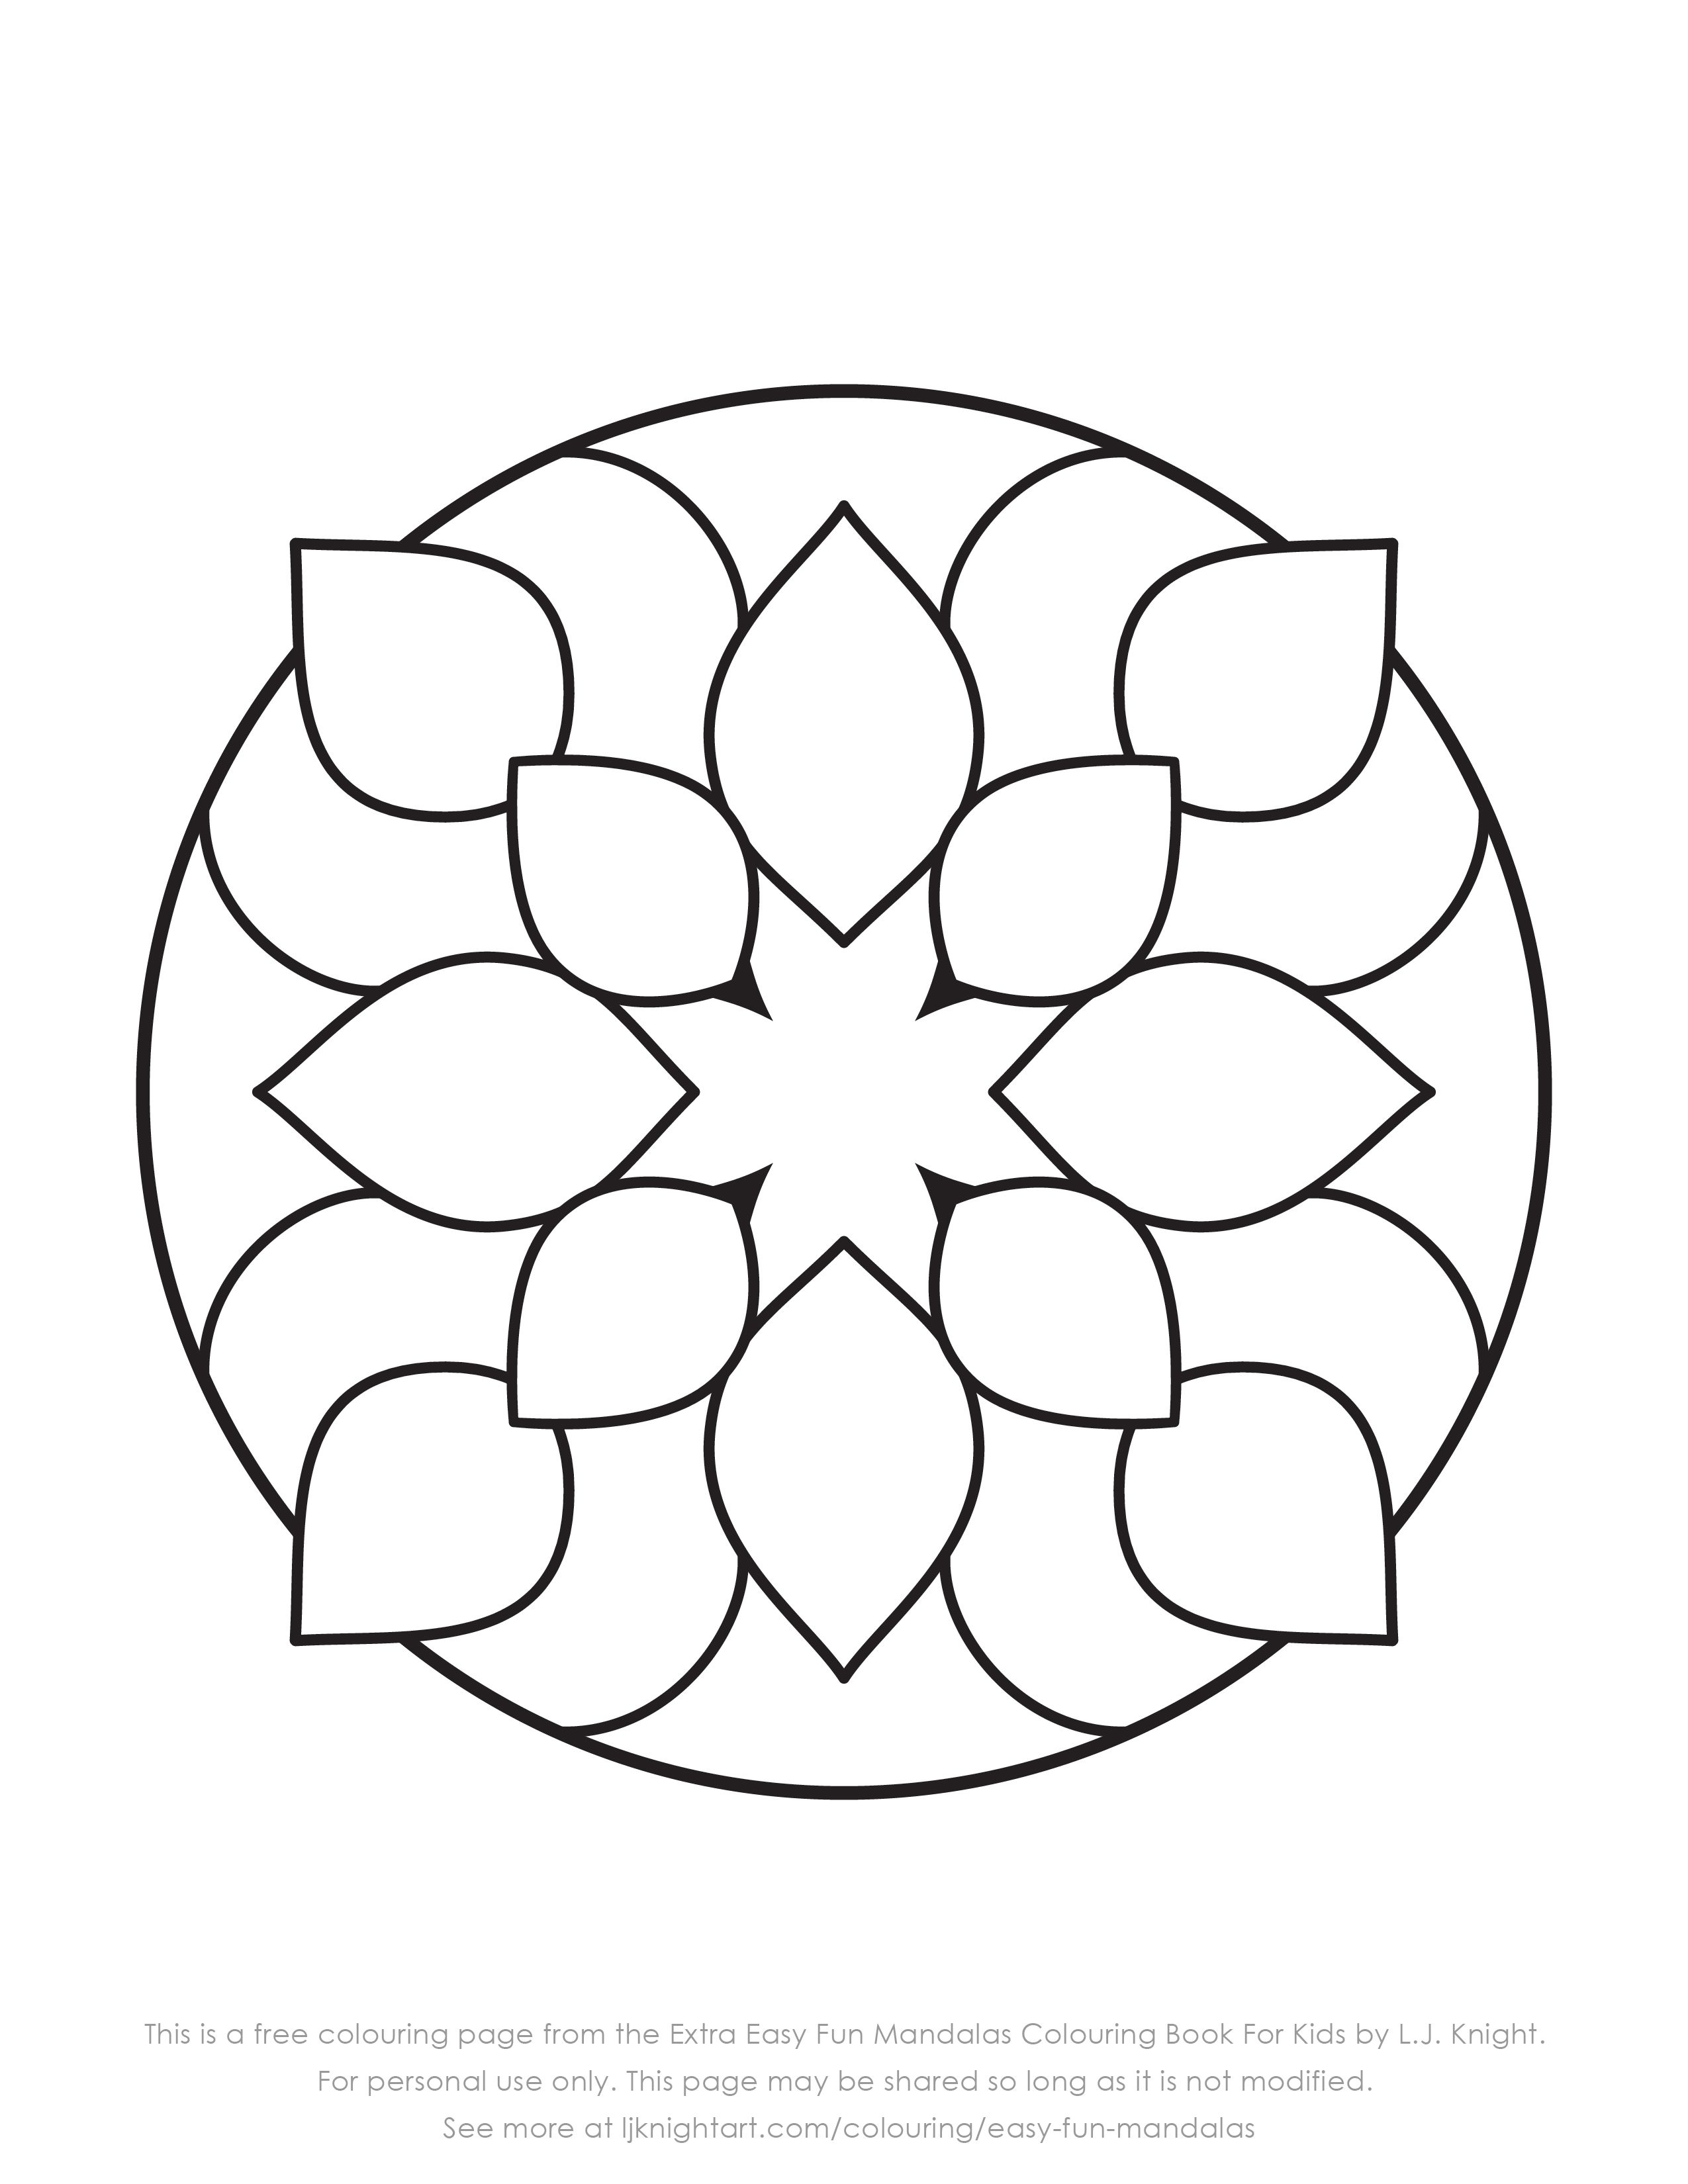 Free Colouring Page From The Extra Easy Fun Mandalas Colouring